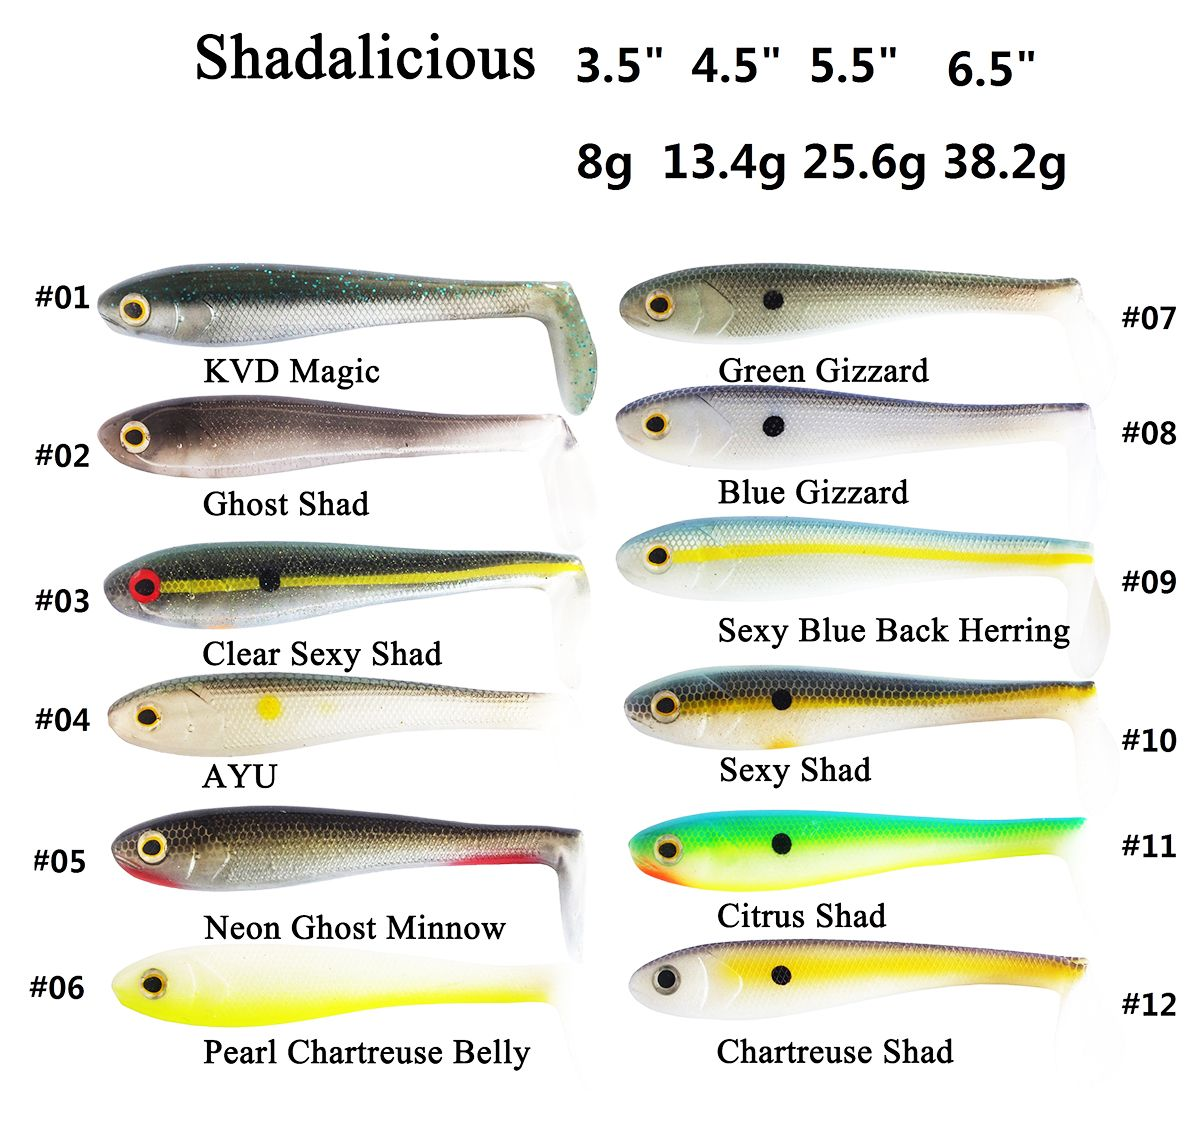 Shadalicious Powerbait Hollow Belly Swimbait In 2020 Belly Soft Lure Soft Plastic